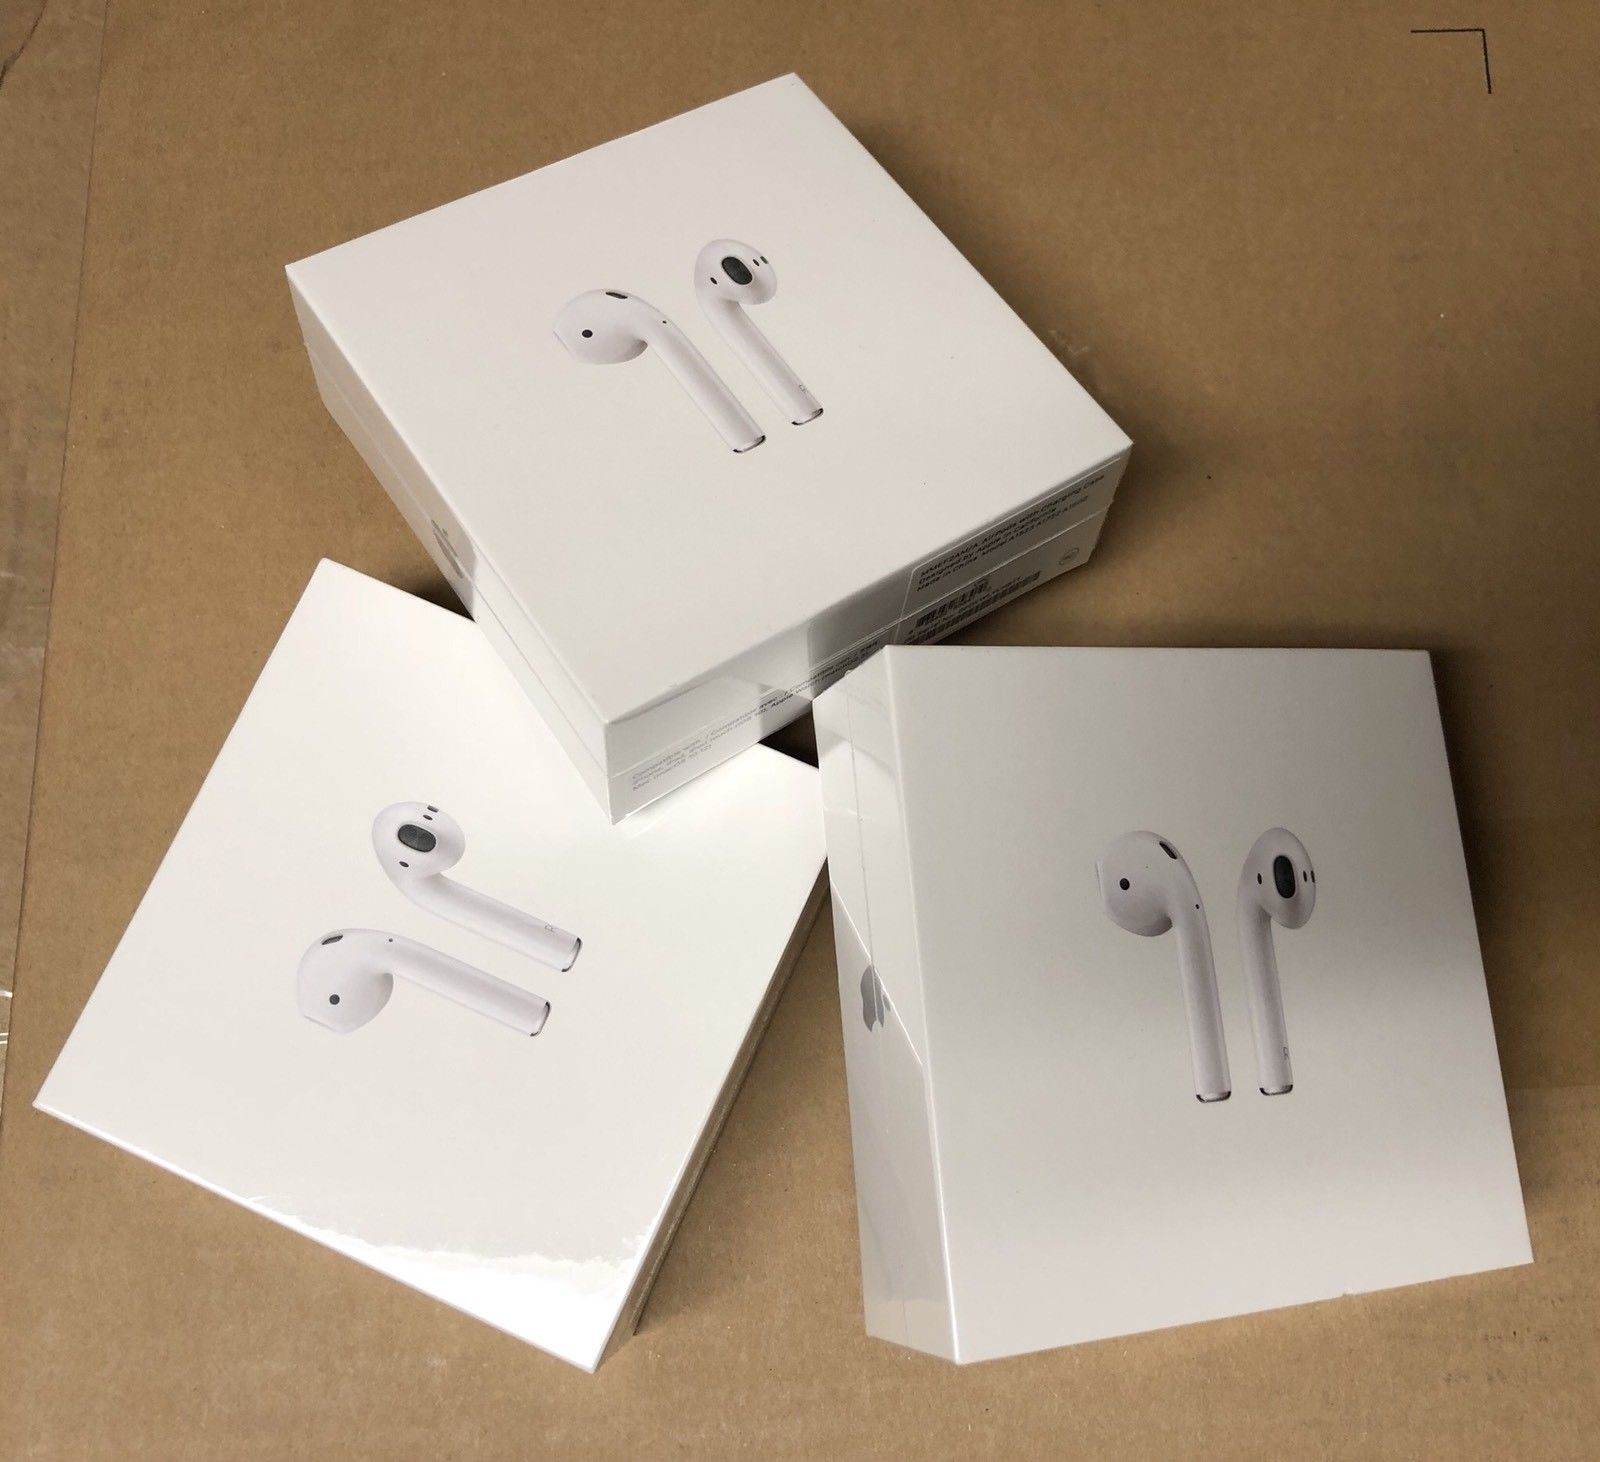 For Sale All kinds of Apple Electronics